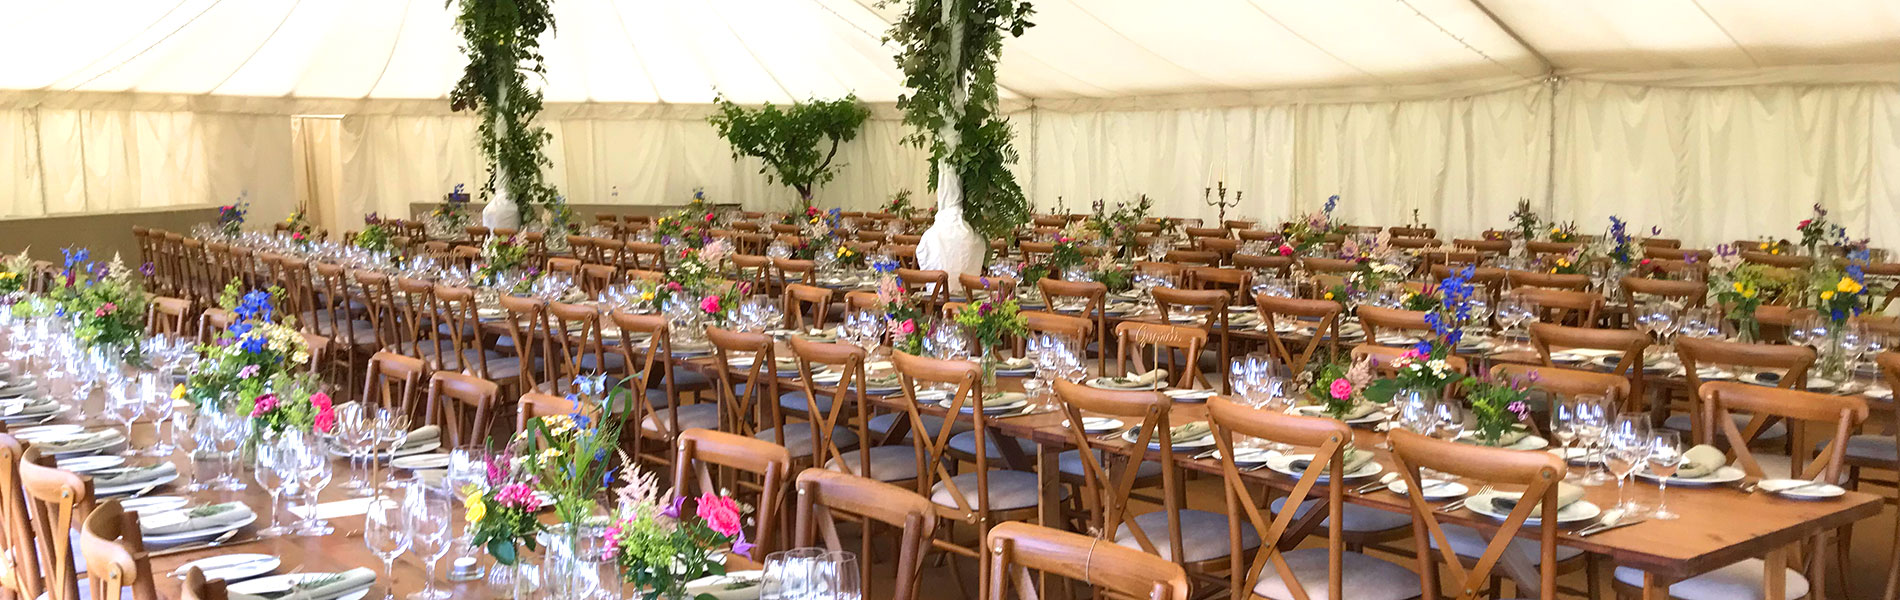 wedding tent with laid tables